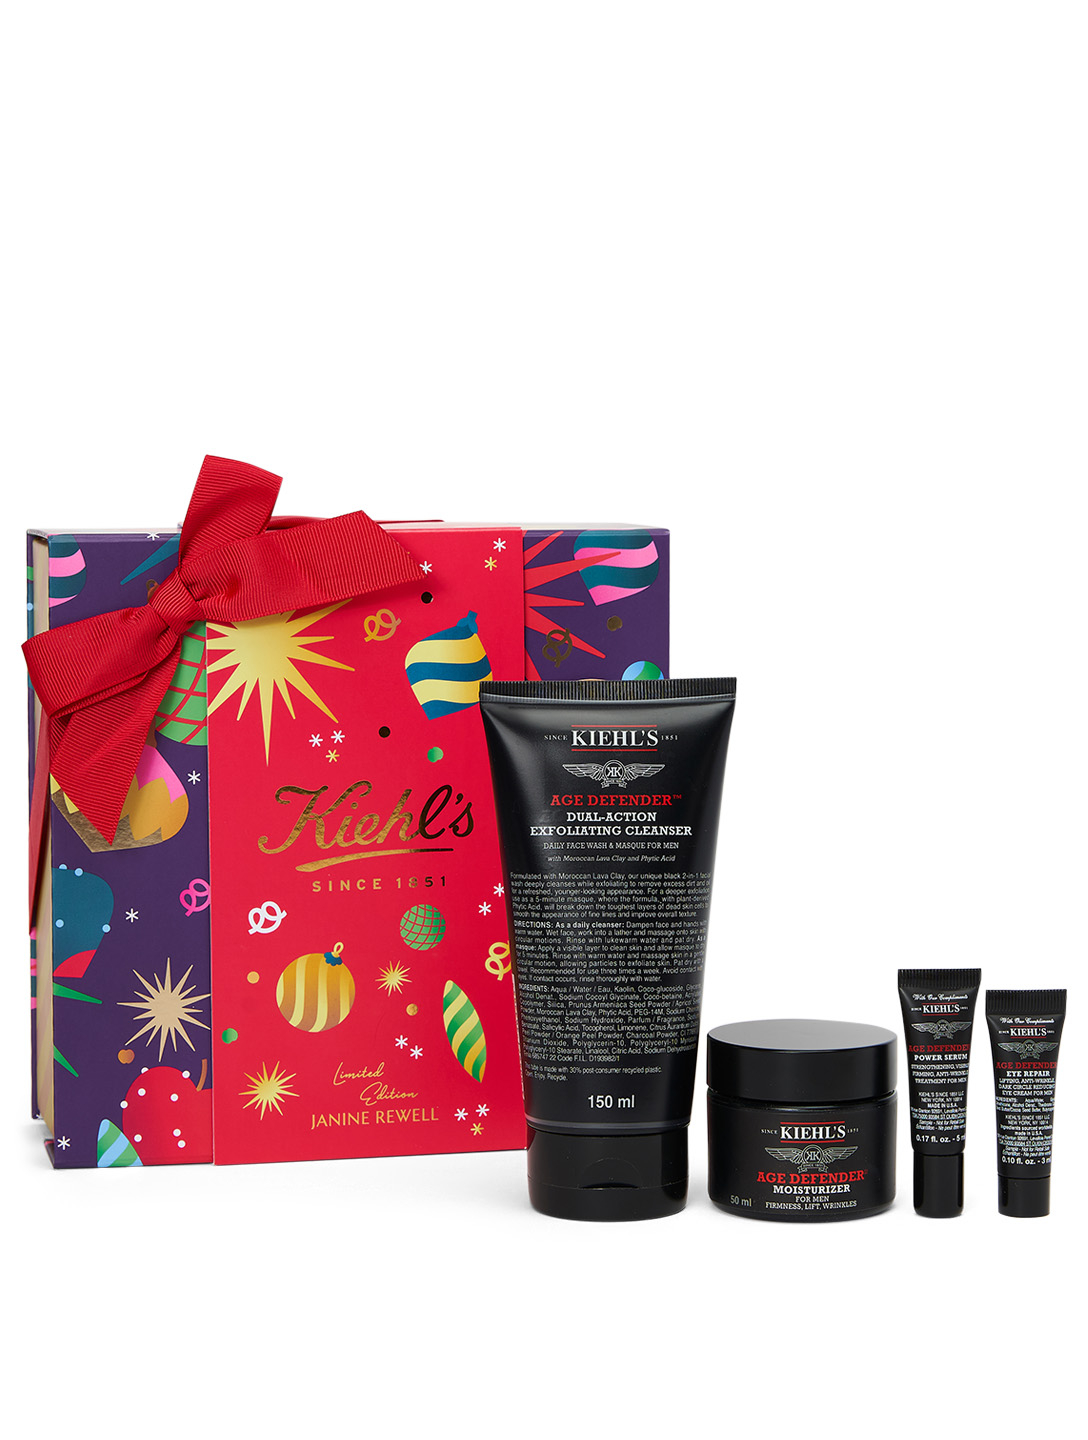 KIEHL'S Men's Heavy Lifter Set - Holiday Edition Beauty